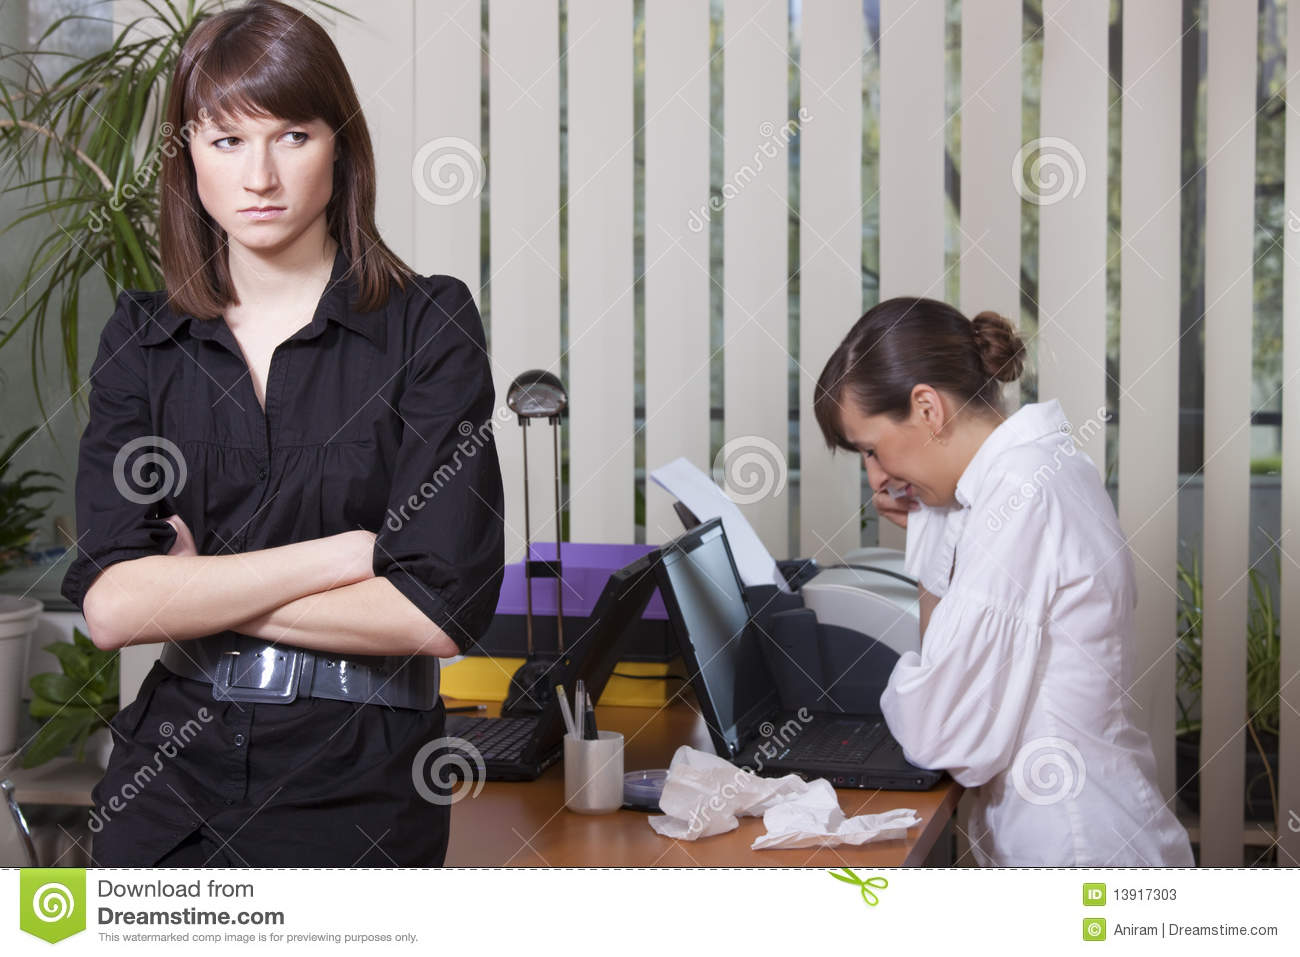 Woman crying in office